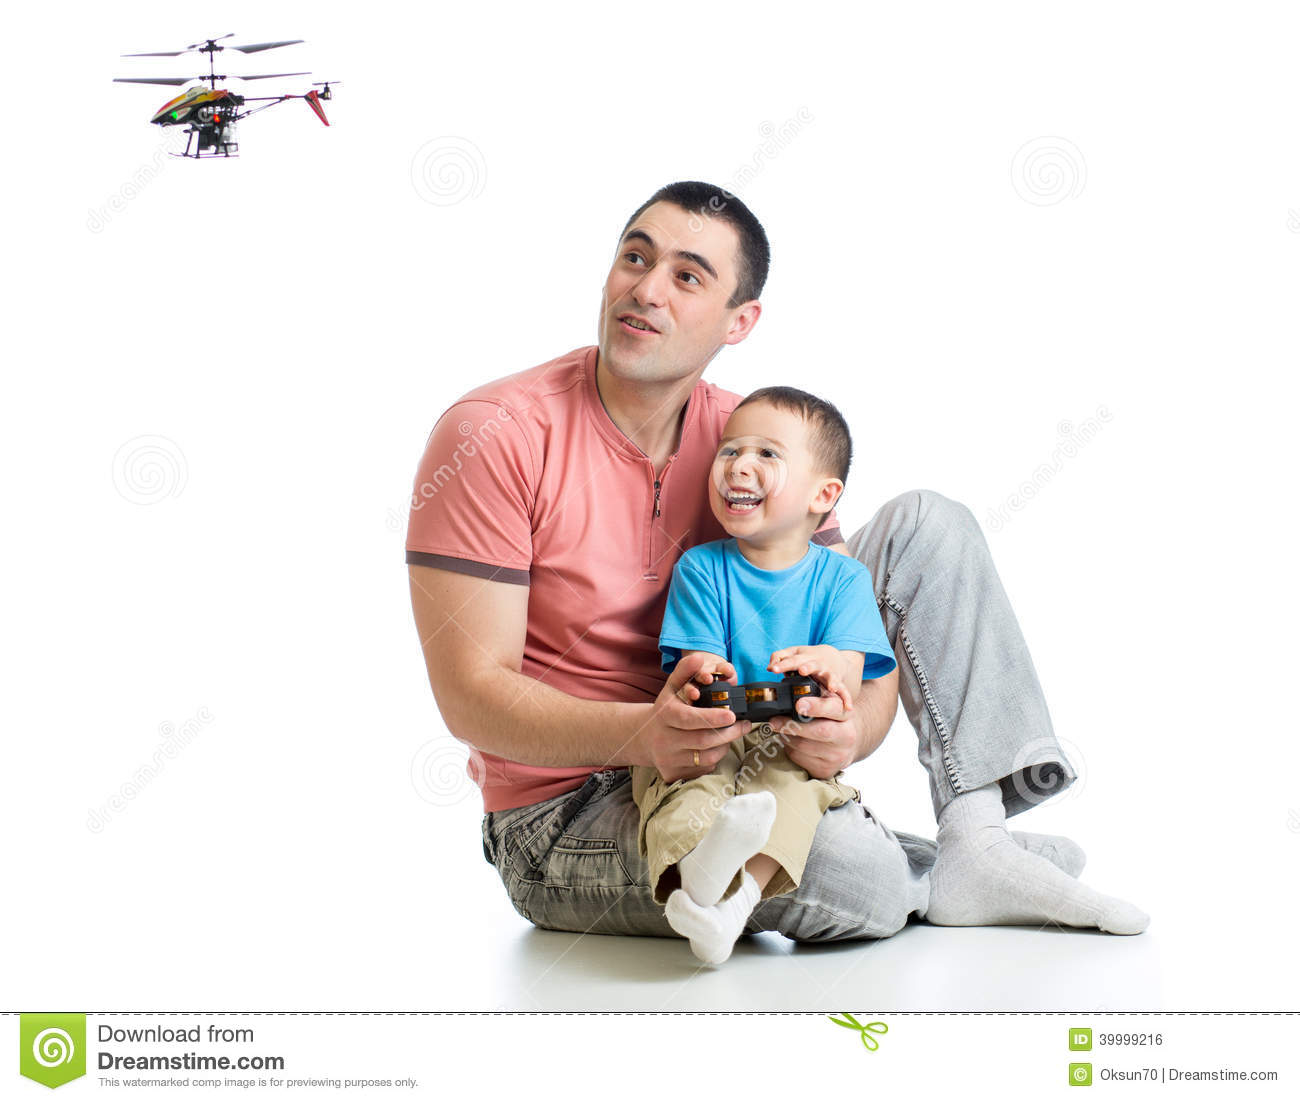 rc helicopter and car with Royalty Free Stock Image Father Kid Playing Rc Helicopter Toy Son Image39999216 on Royalty Free Stock Image Father Kid Playing Rc Helicopter Toy Son Image39999216 moreover 37208 besides The Best 10 Lego Set Of All Time moreover Build A Remote Controlled Robot likewise Discharge methods.